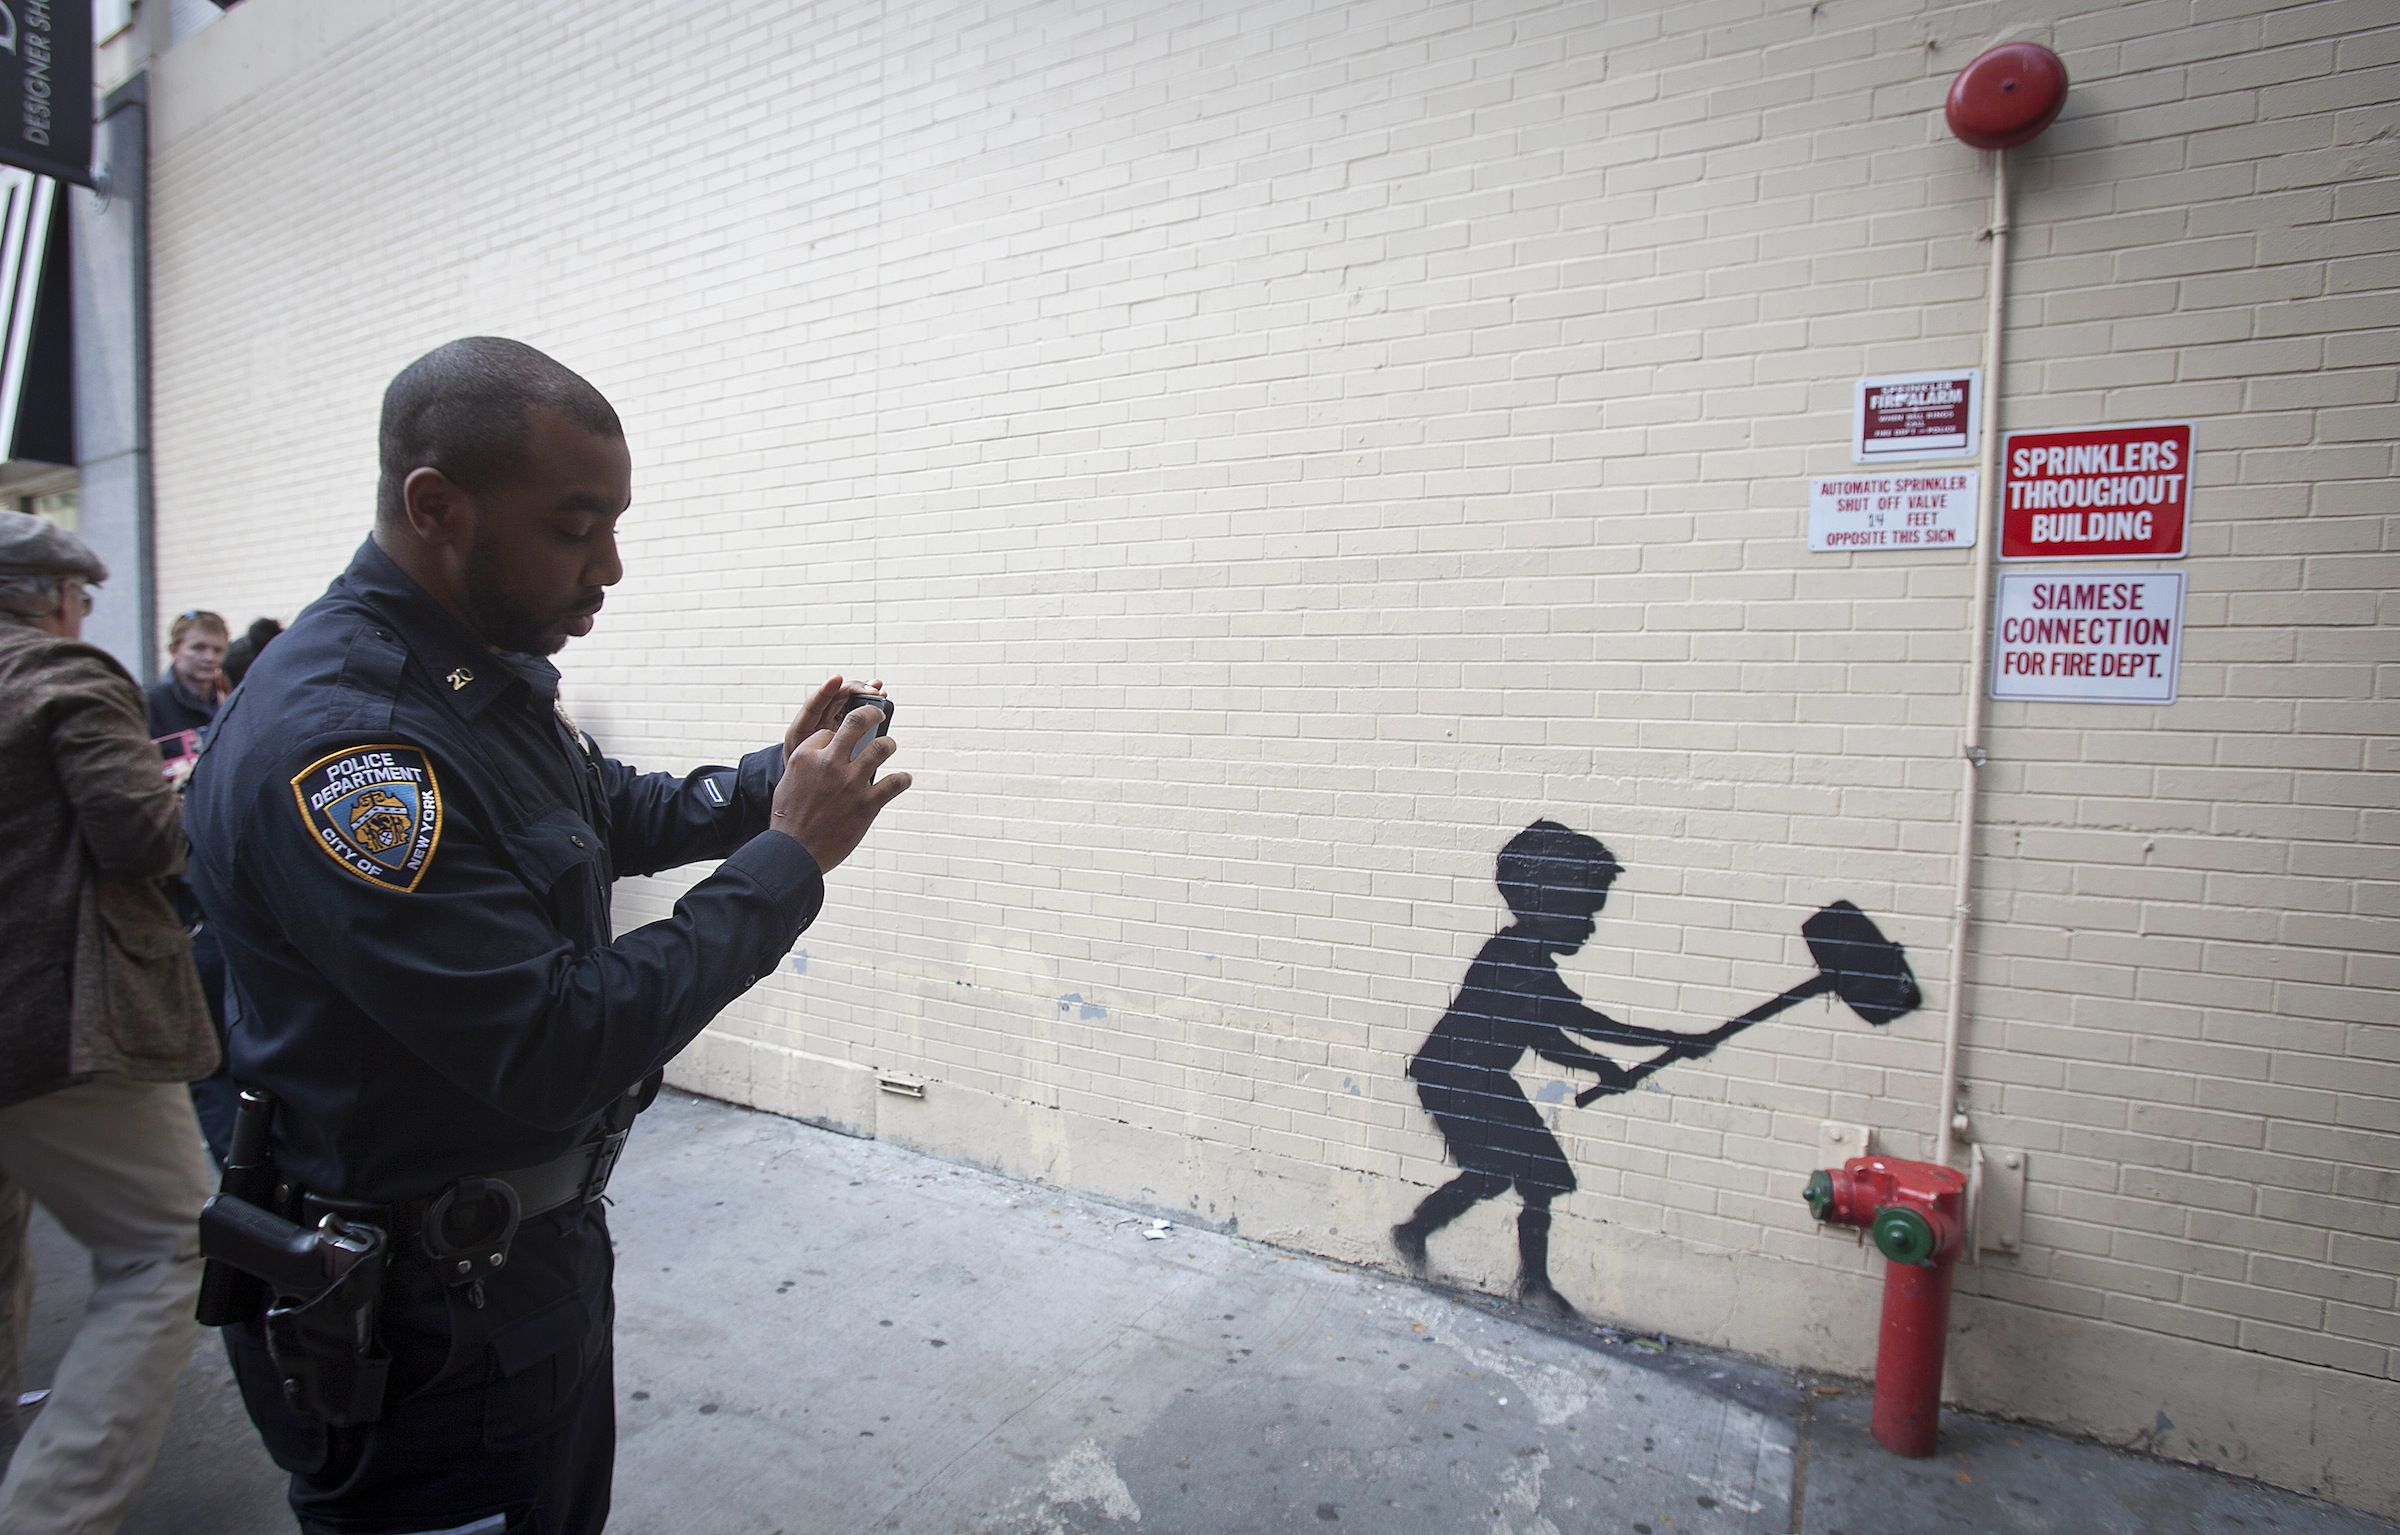 """A police officer takes a photo of a new installation of British graffiti artist Banksy's art in New York, October 20, 2013. According to local media, Banksy has caught the attention of New York mayor Michael Bloomberg who said, """"It's a sign of decay and loss of control"""" and that graffiti ruins property.  REUTERS/Carlo Allegri (UNITED STATES - Tags: SOCIETY) - RTX14I51"""